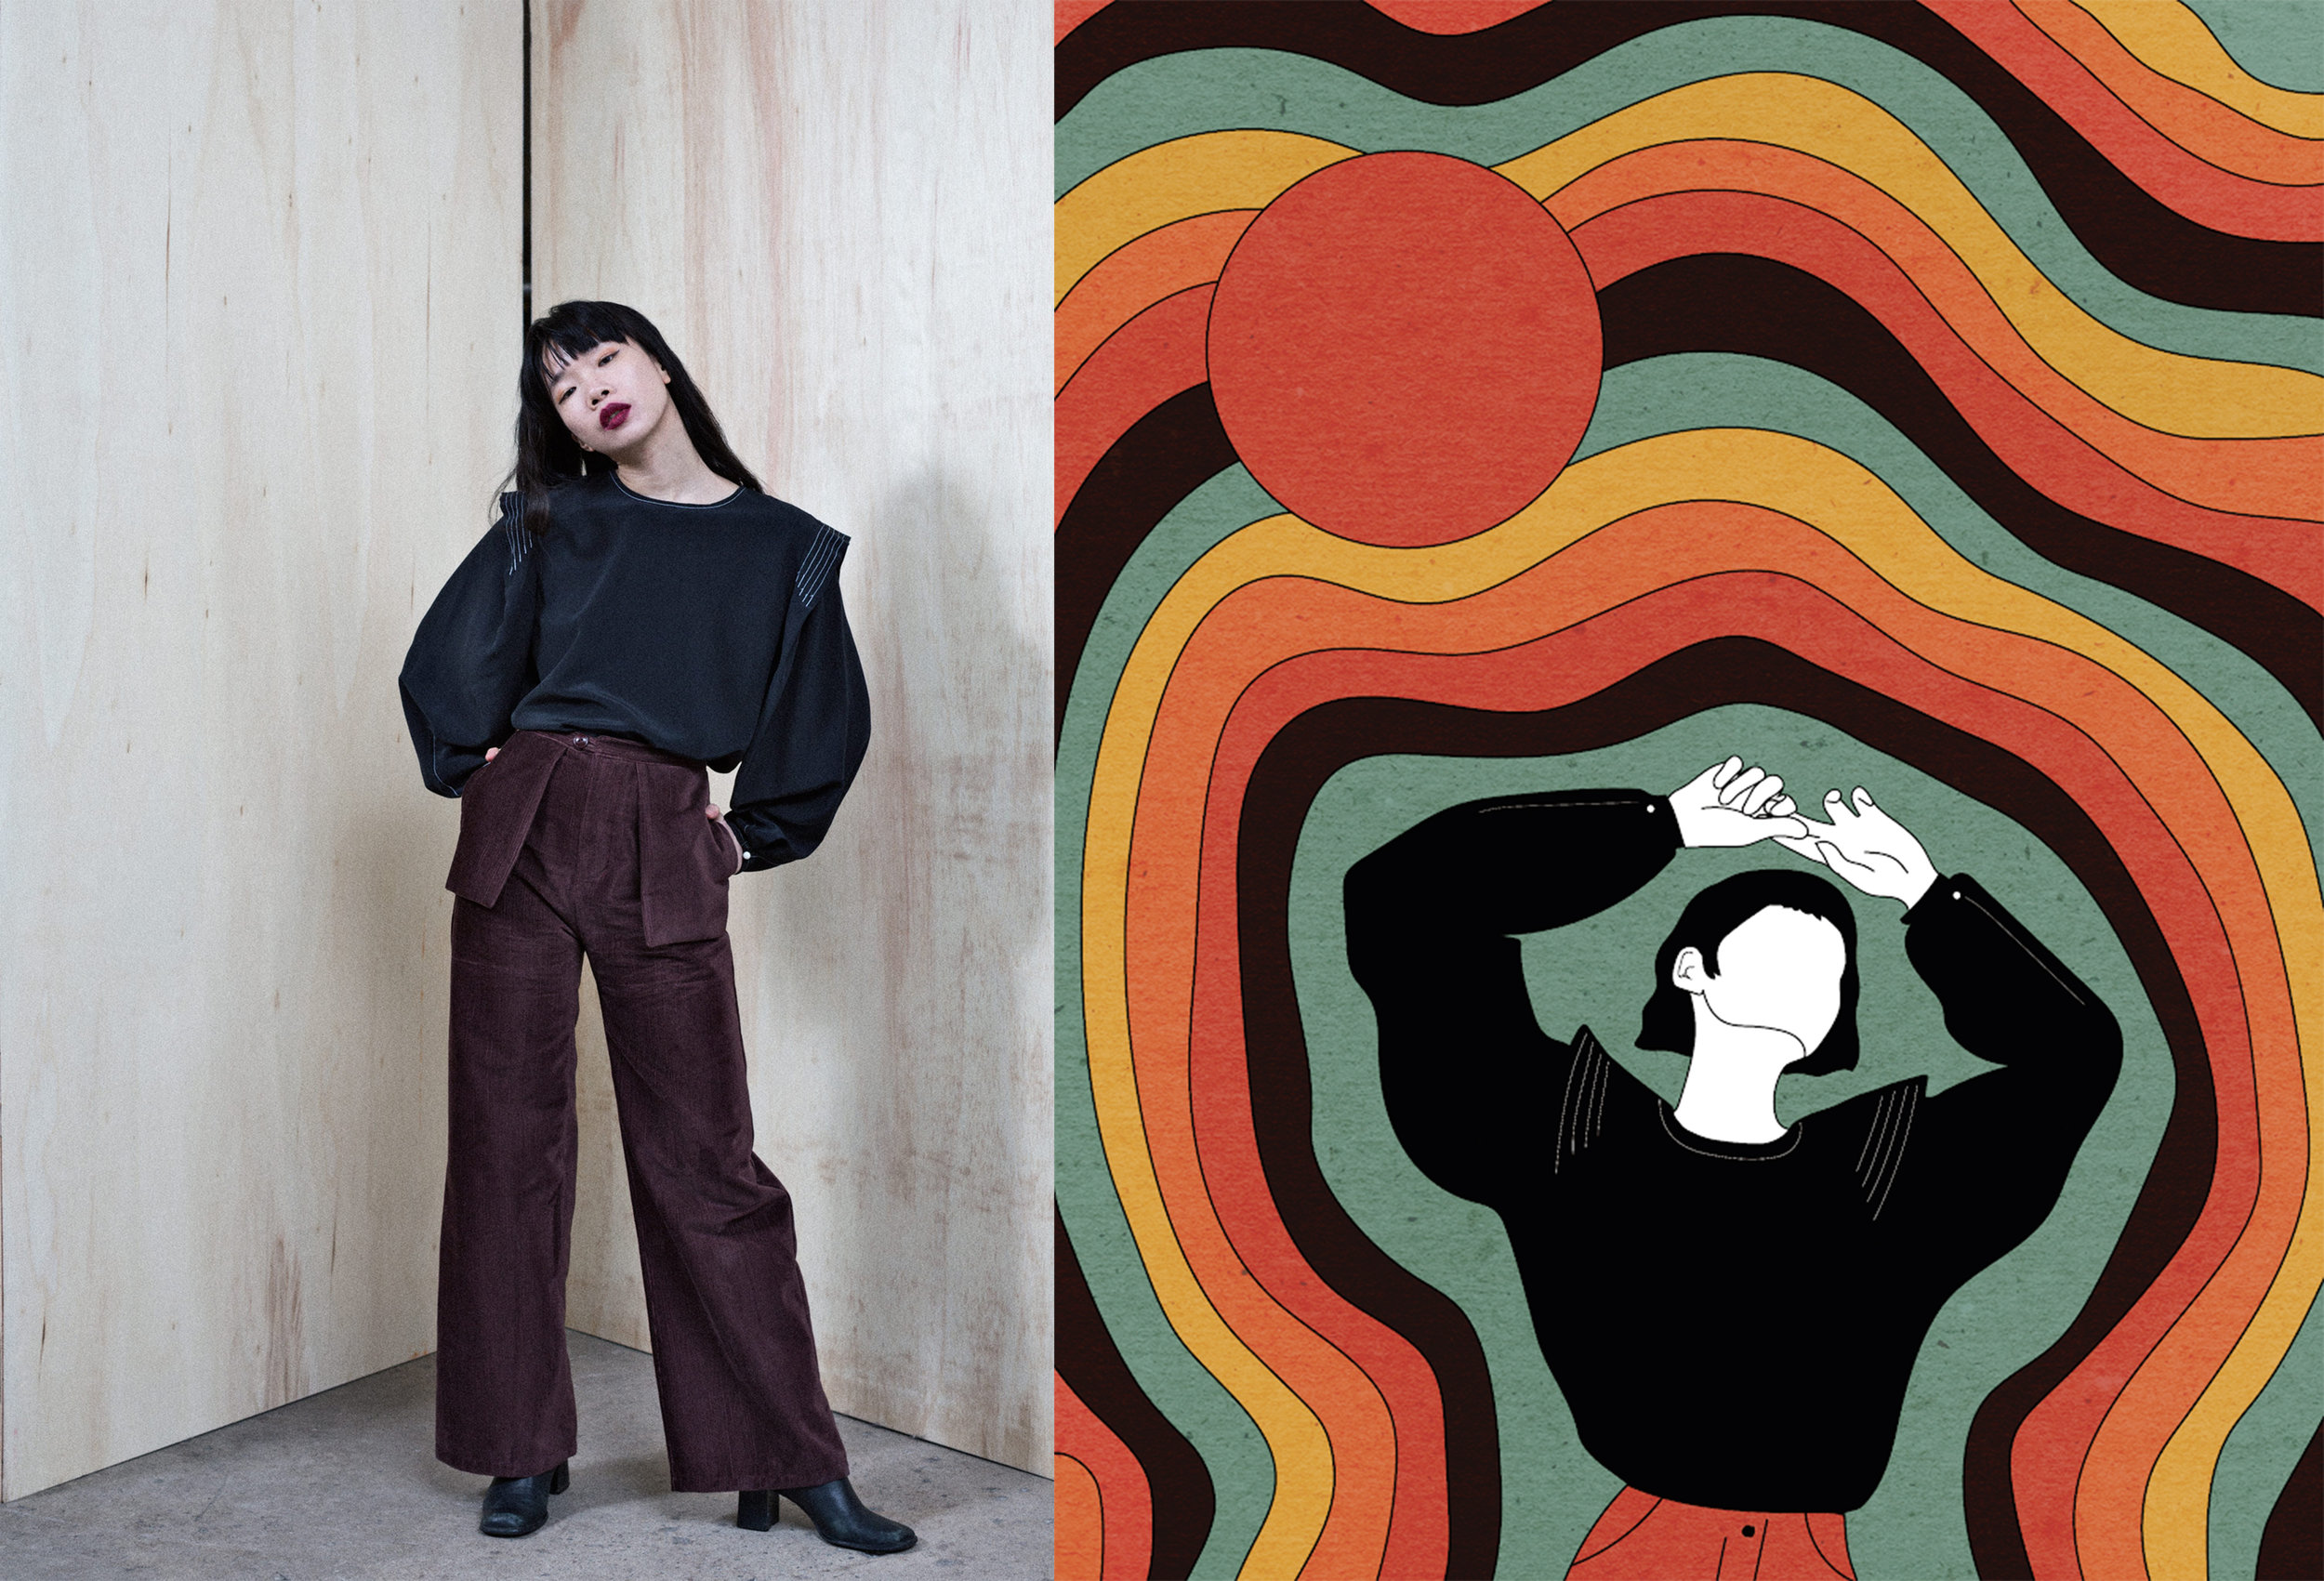 The Edith top Photographed by Colin Simmons, Illustrated by Holly Stapleton